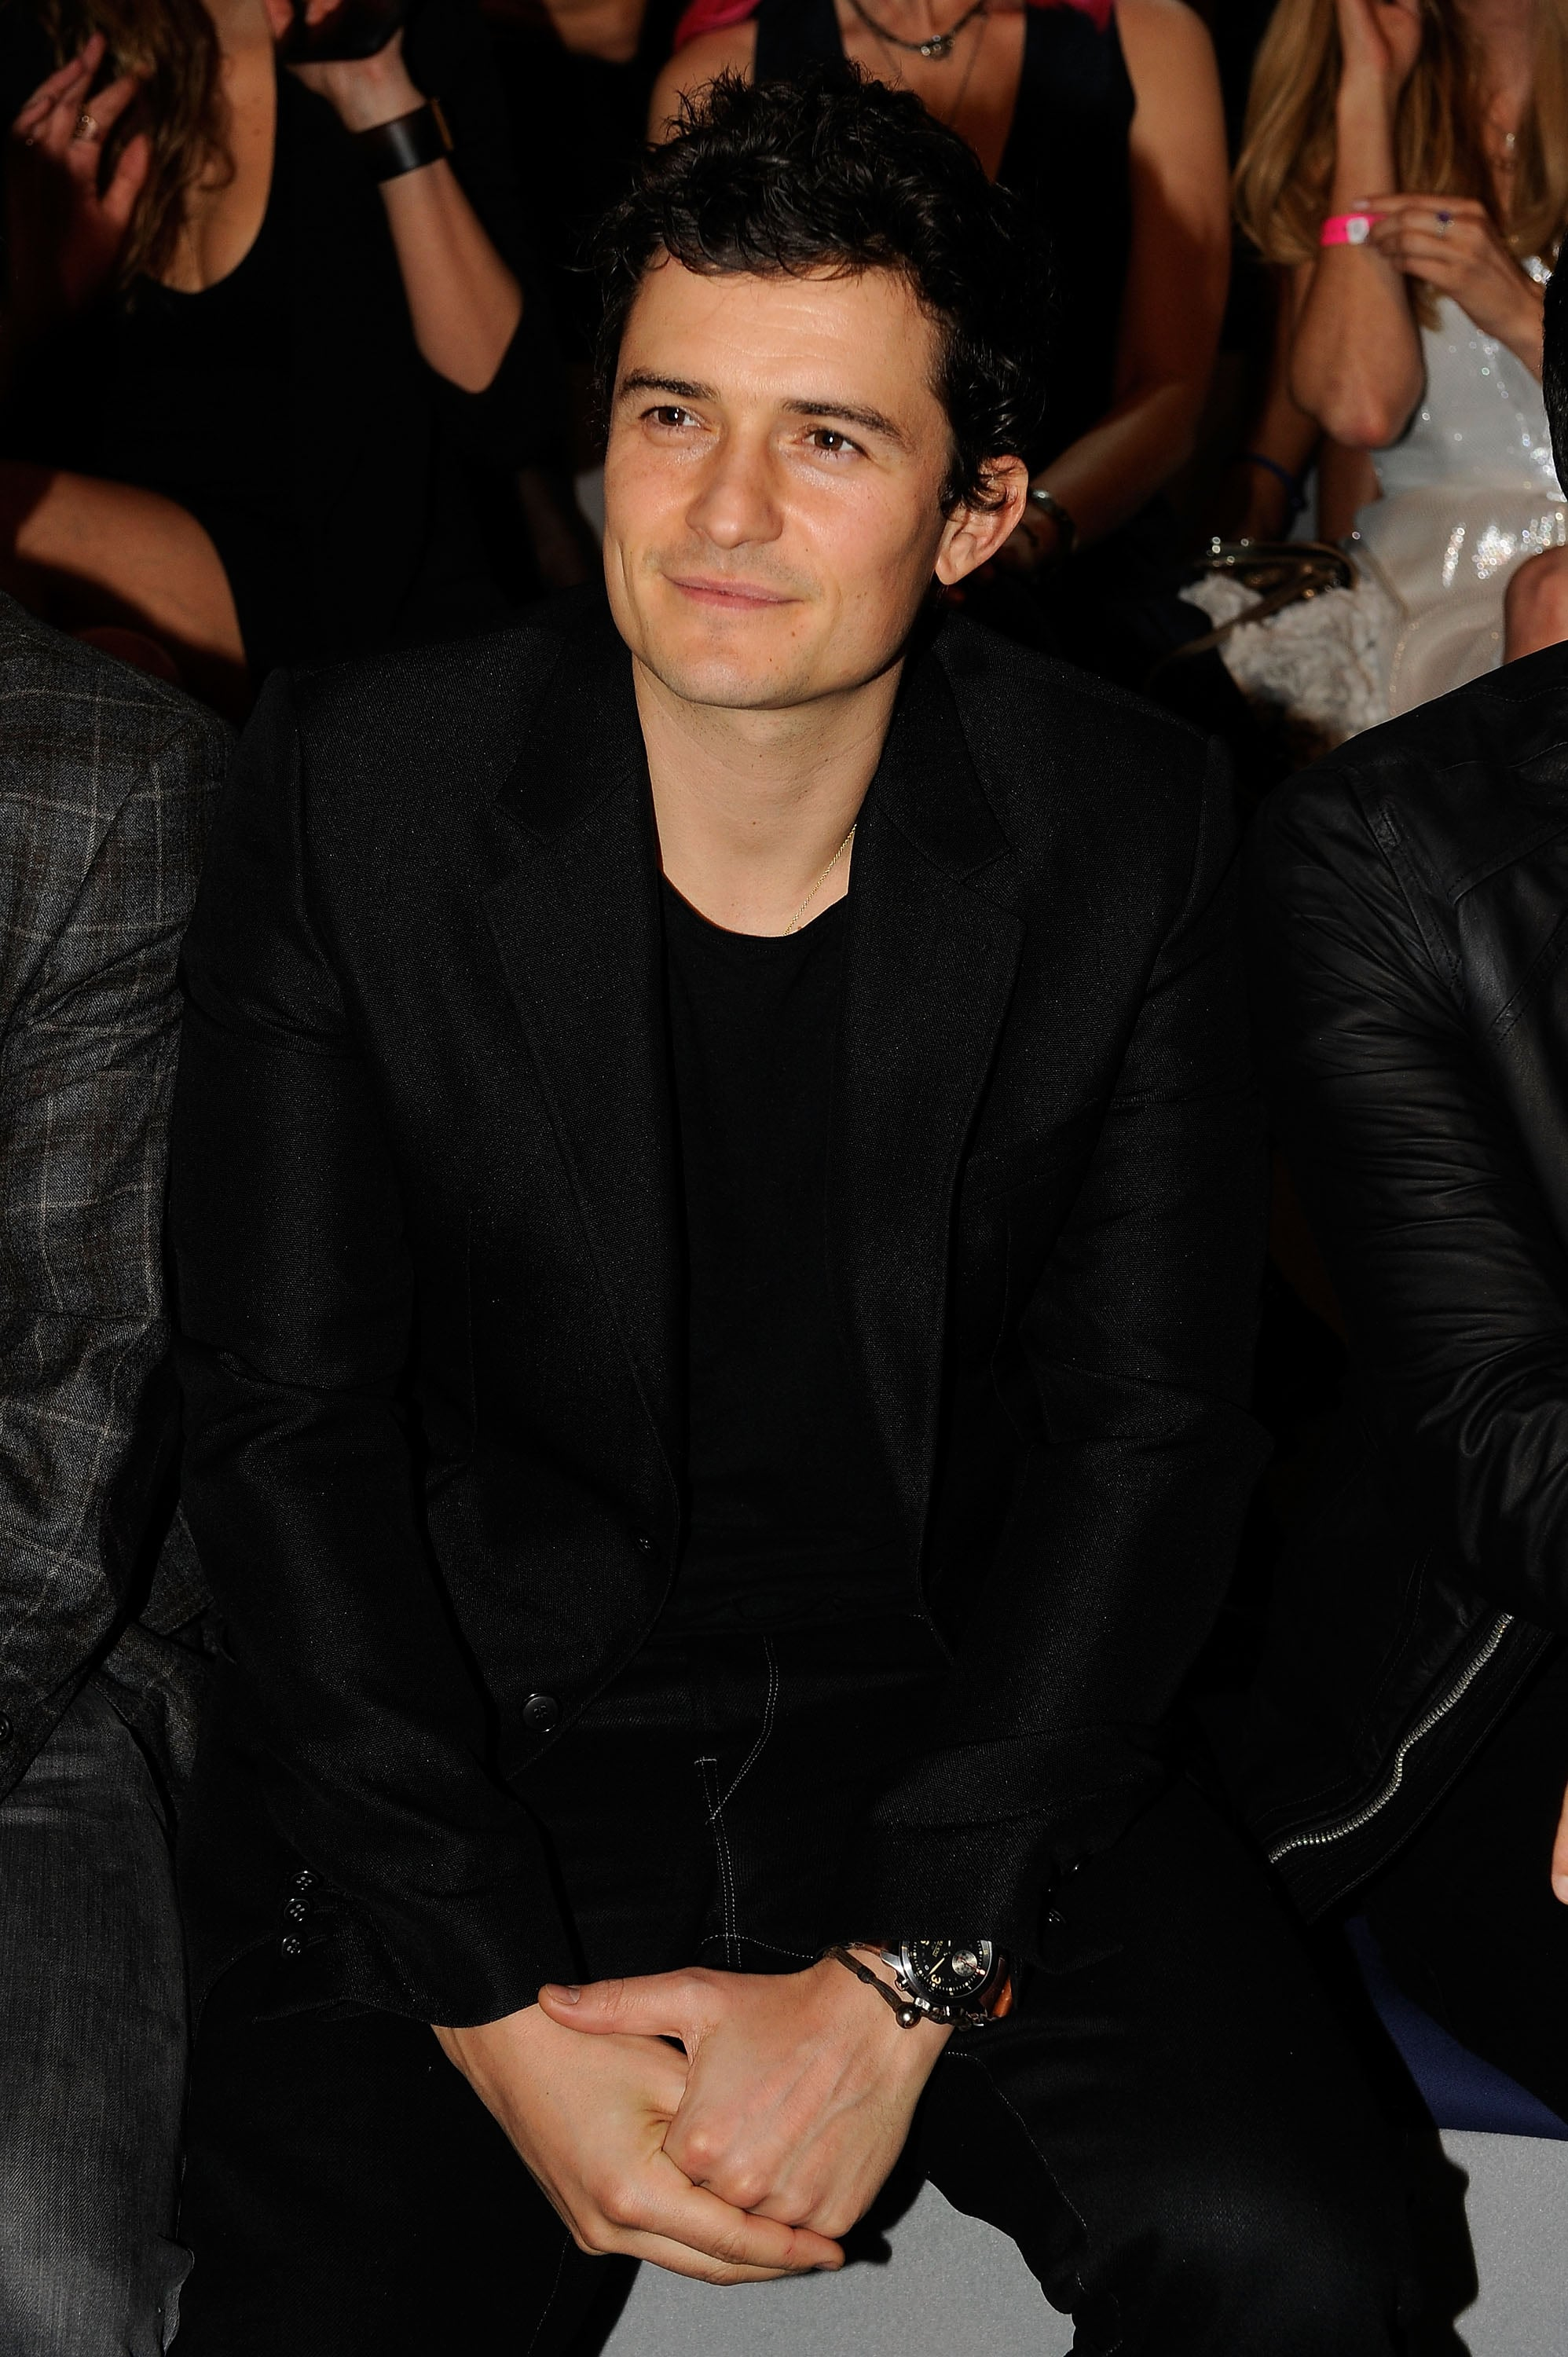 Orlando Bloom watched his then-wife Miranda Kerr in 2011 from the front row.